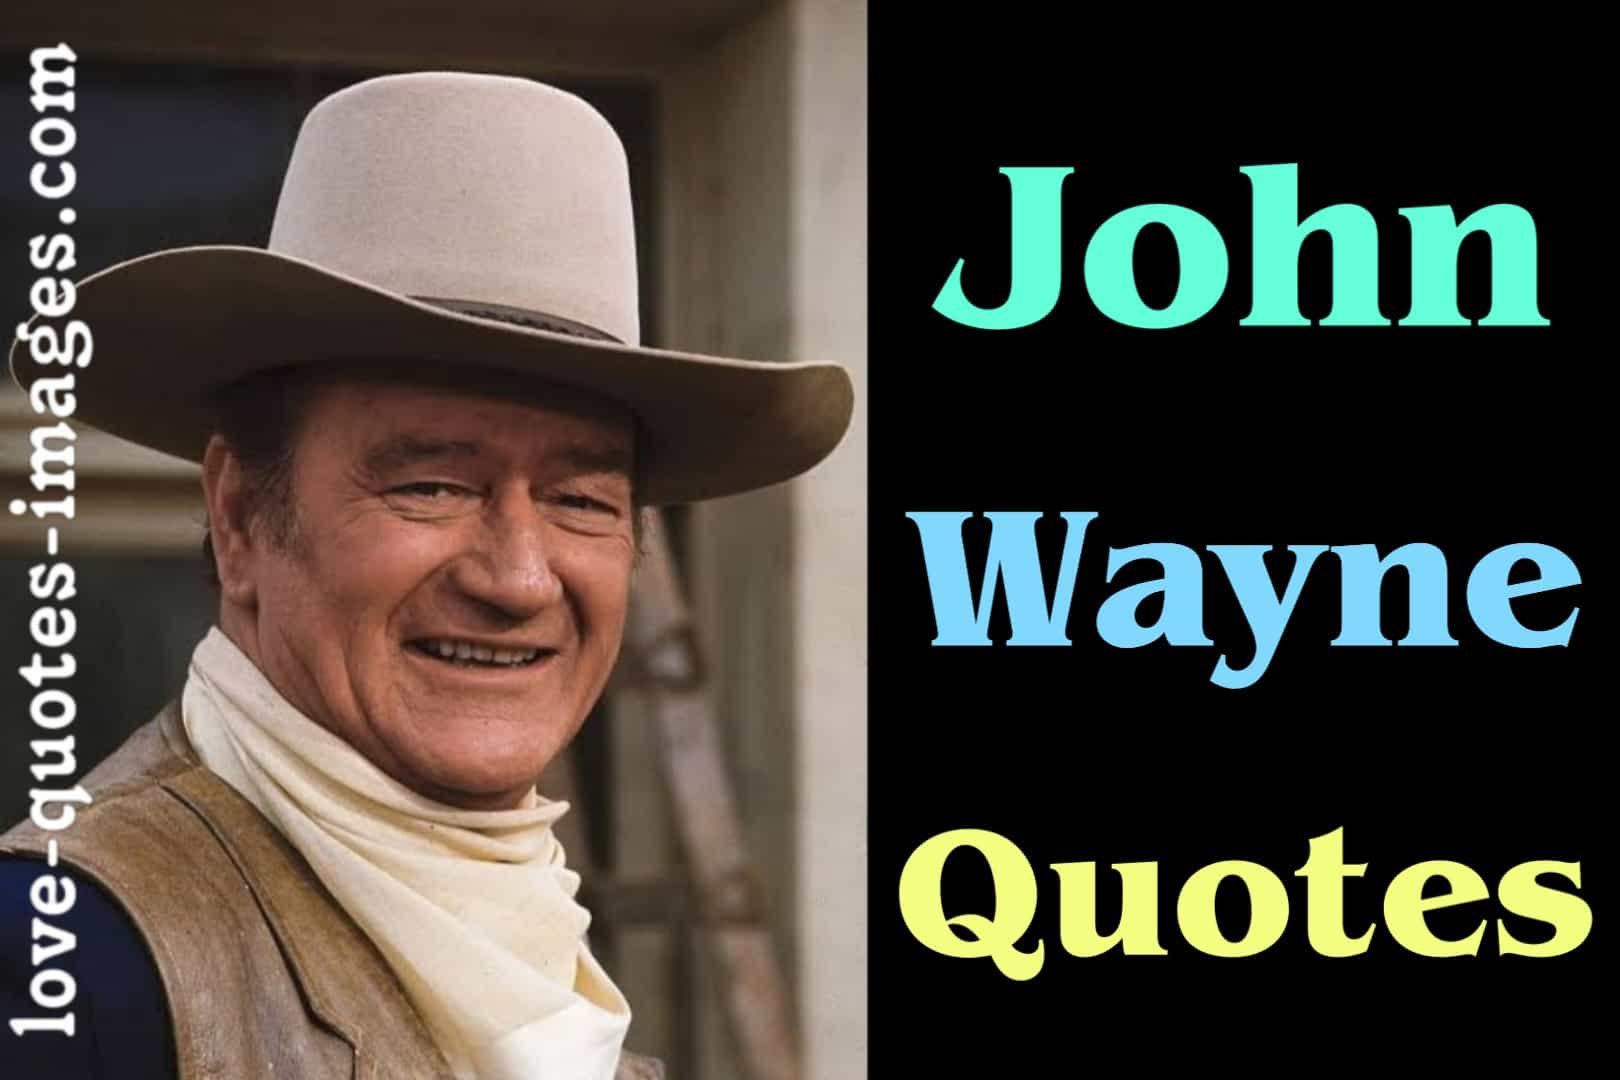 John Wayne pictures and Quotes